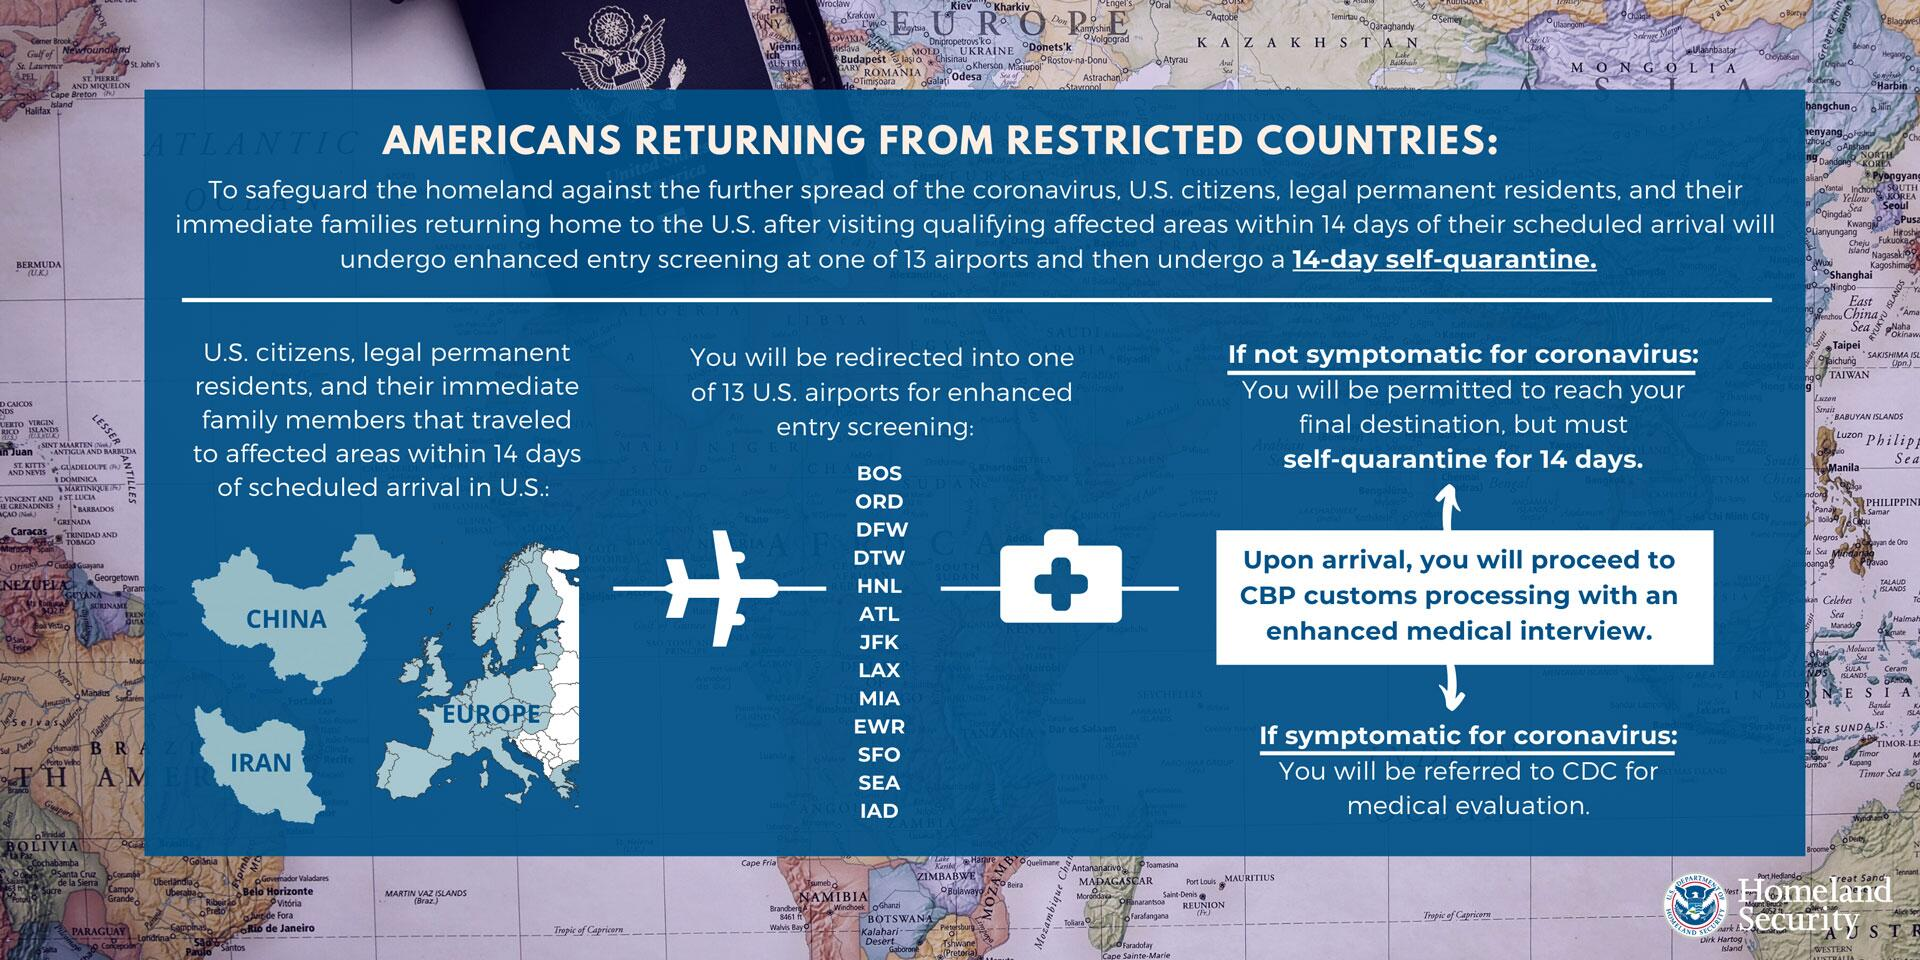 Americans Returning From Restricted Countries: To safeguard the homeland against the further spread of the coronavirus, US citizens, legal permanent residents, and their immediate families returning home to the US after visiting qualifying affected areas with 14 days of their scheduled arrival will undergo enhanced entry screening at one of 13 airports and then undergo a 14-day self-quarantine. | US citizens, legal permanent residents, and their immediate family members that traveled to affected ares within 14 days of scheduled arrival in the US [map of China, Iran, and Europe] You will be redirected into one of 13 US airports for enhanced entry screening: BOS, ORD, DFW, DTW, HNL, ATL, JFK, LAX, MIA, EWR, SFO, SEA, IAD. | Upon arrival, you will proceed with CBP customs process with an enhanced medial interview. If not symptomatic for coronavirus, You will be permitted to reach your final destination, but must self-quarantine for 14 days. If symptomatic for coronavirus, you will be referred to CDC for medical evaluation.